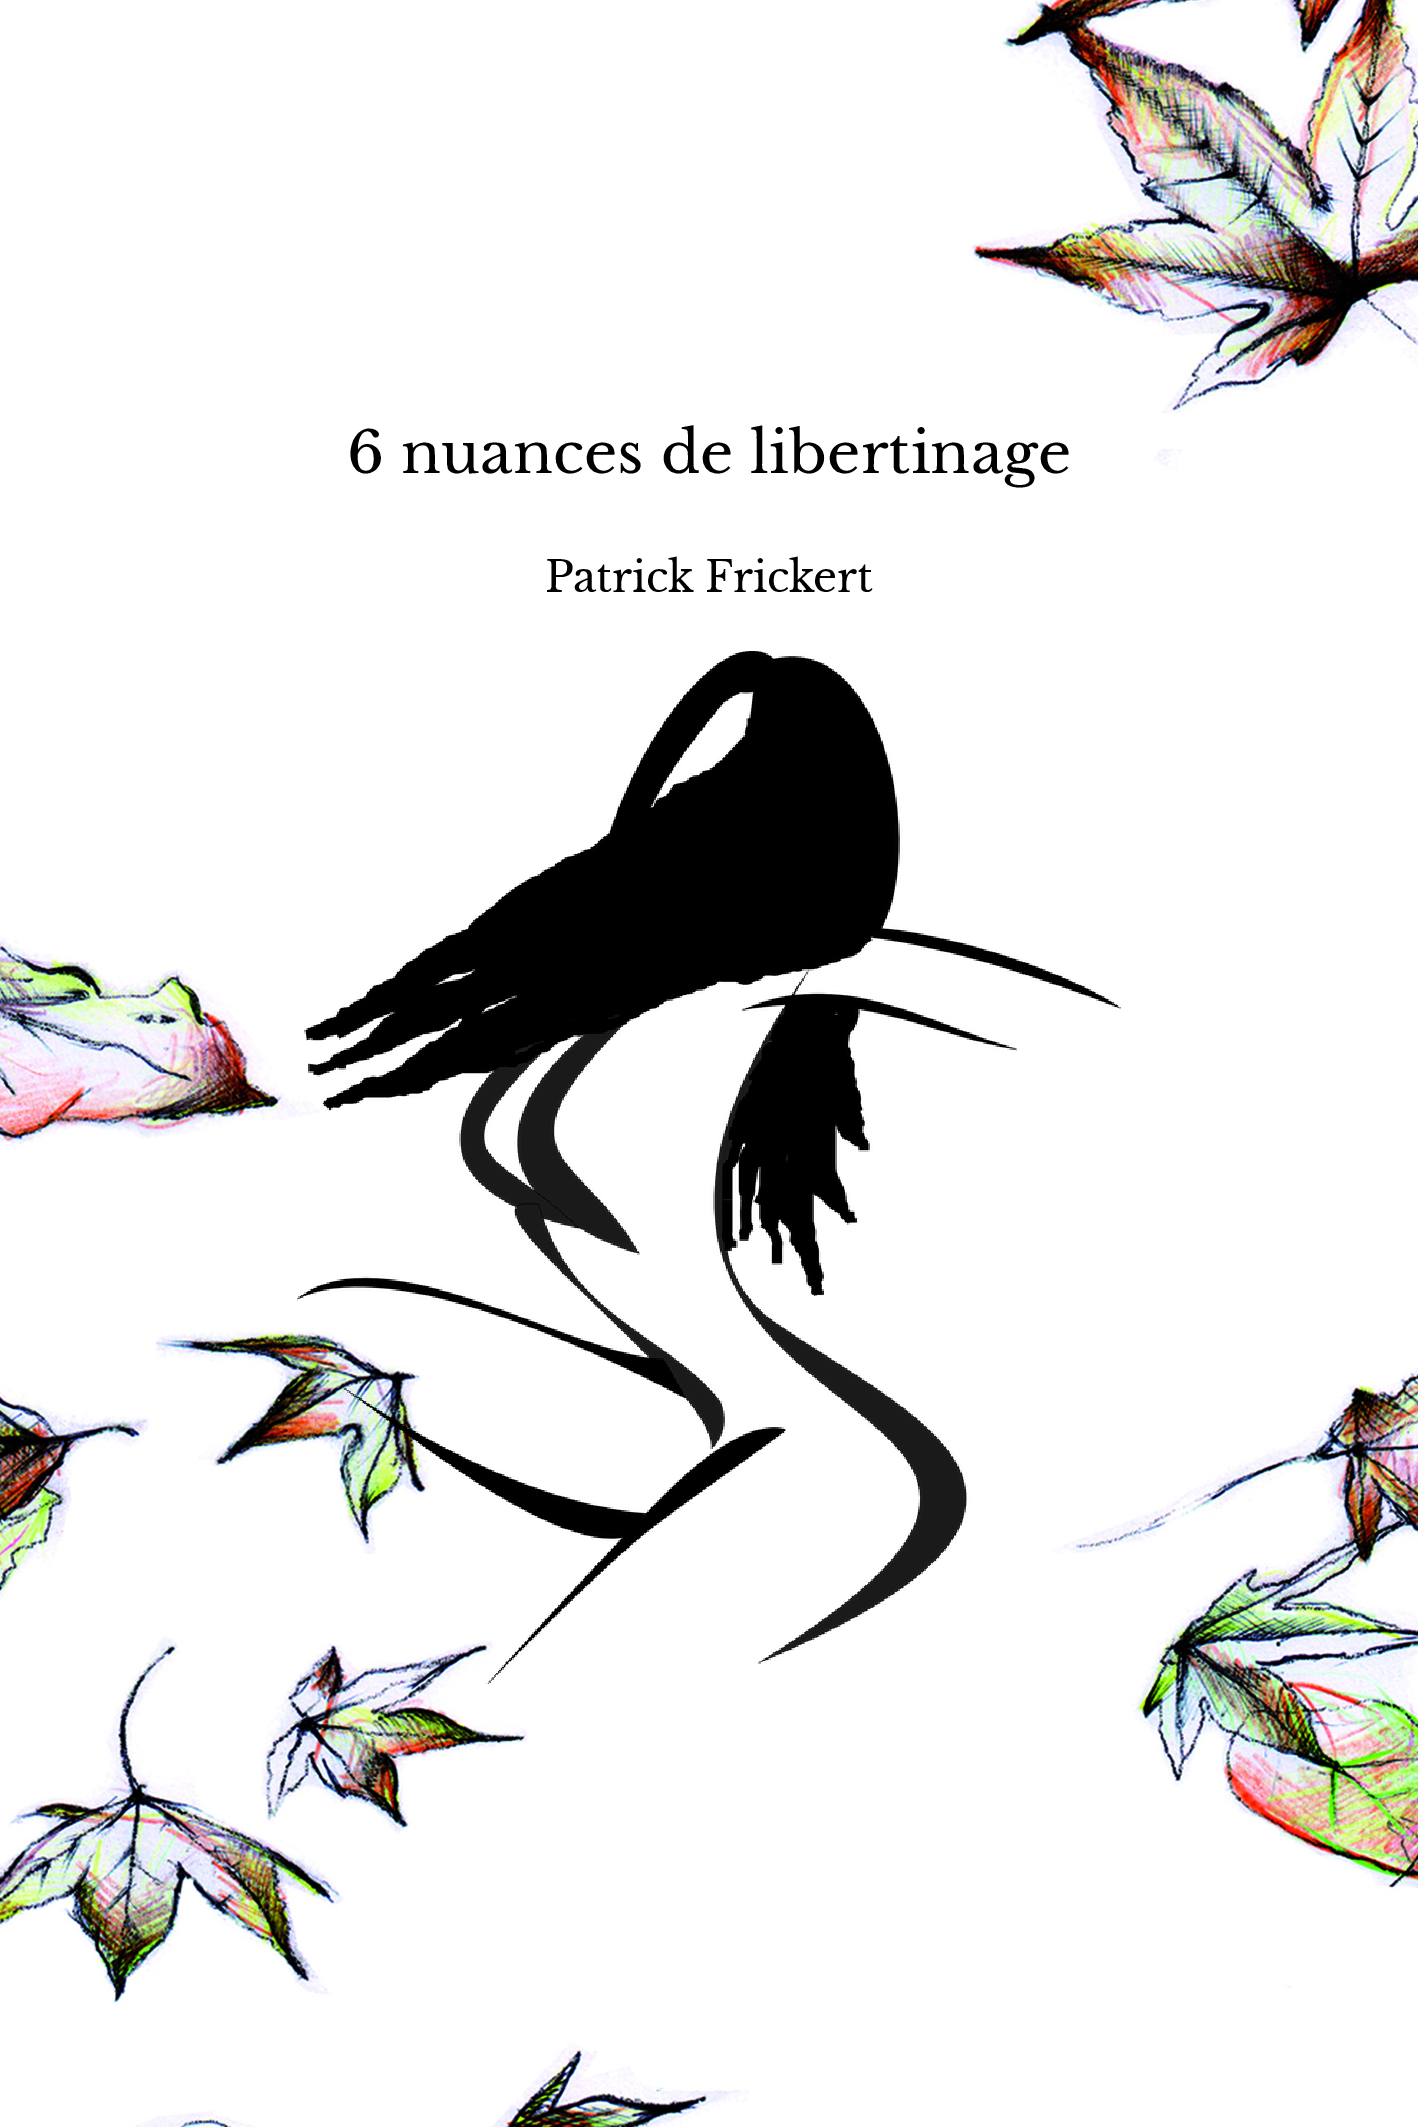 6 nuances de libertinage